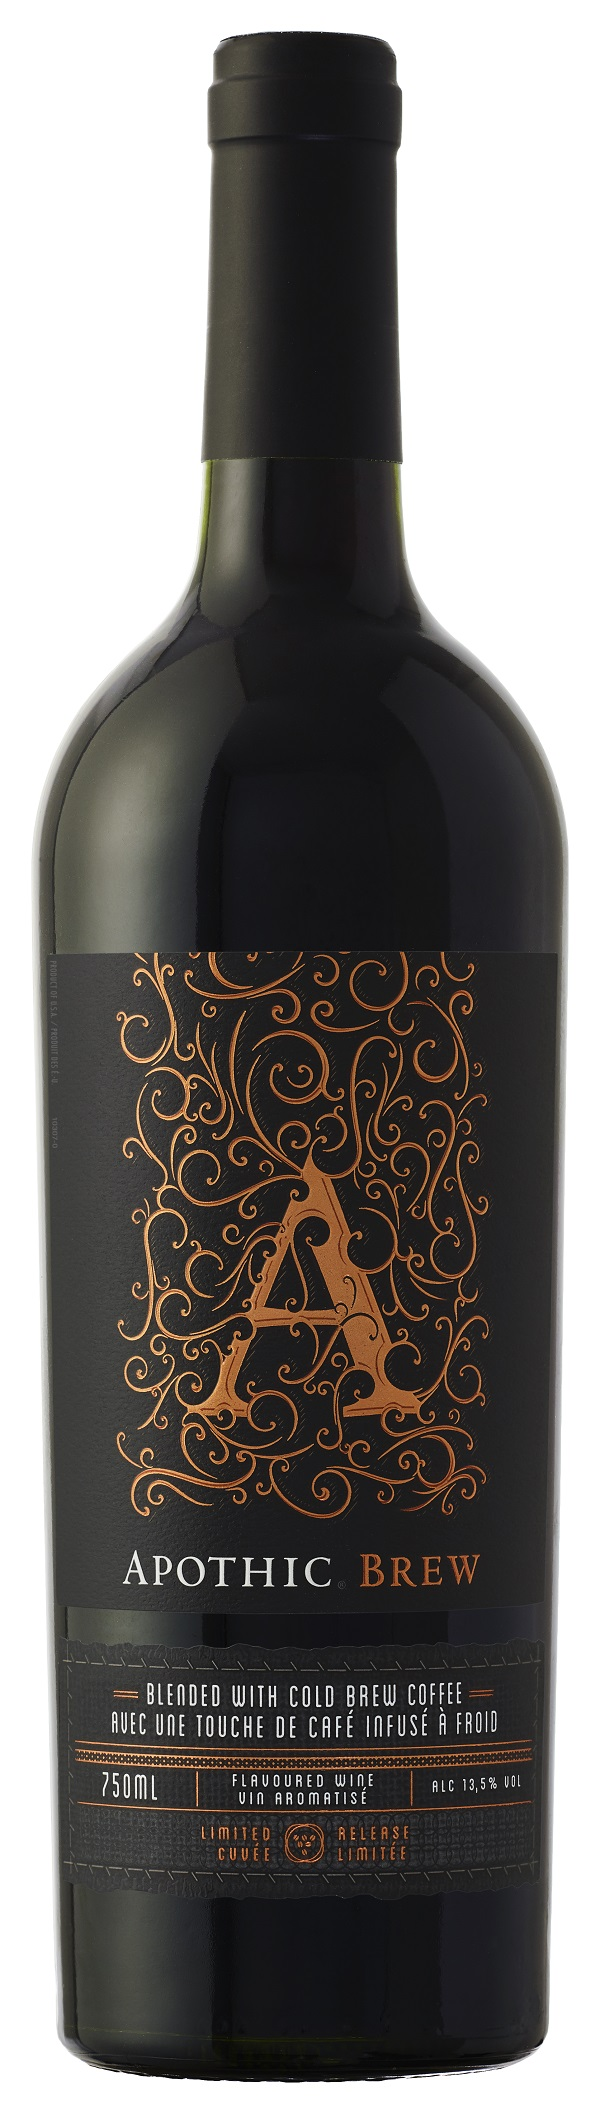 NV Apothic Brew Red Wine Infused with Coffee